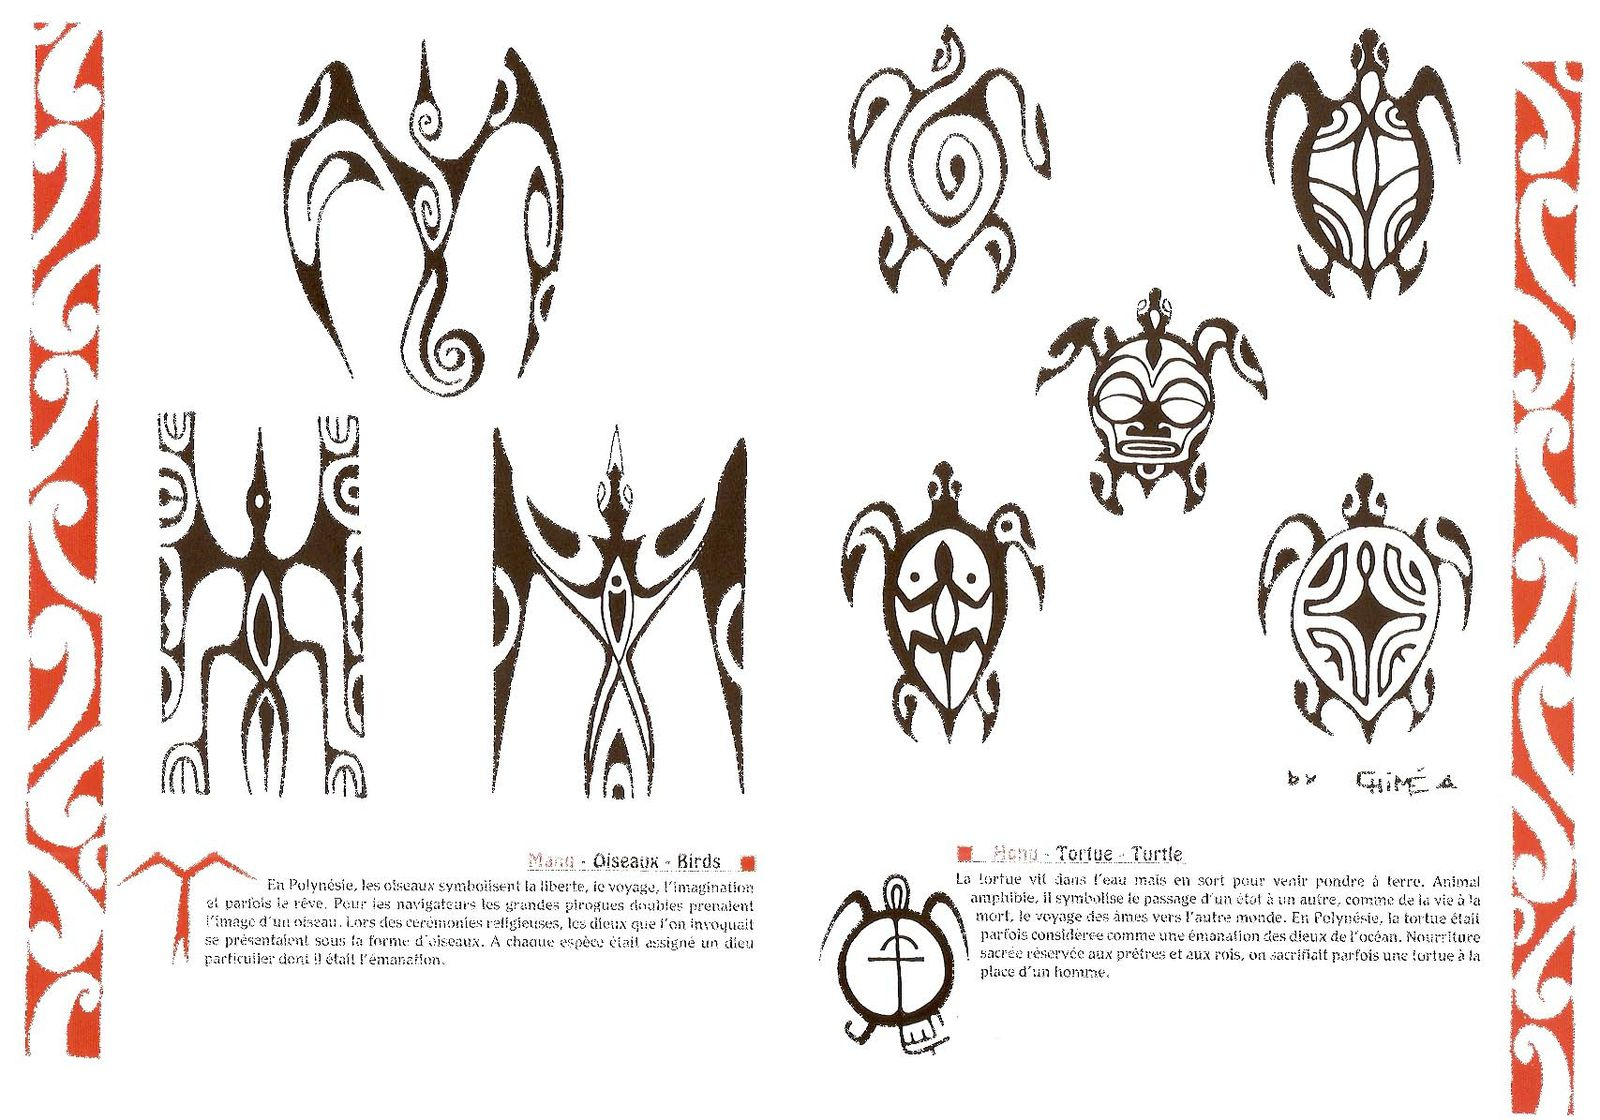 Signification tatouage polyn sien raie galerie tatouage - Tatouage tribal signification ...